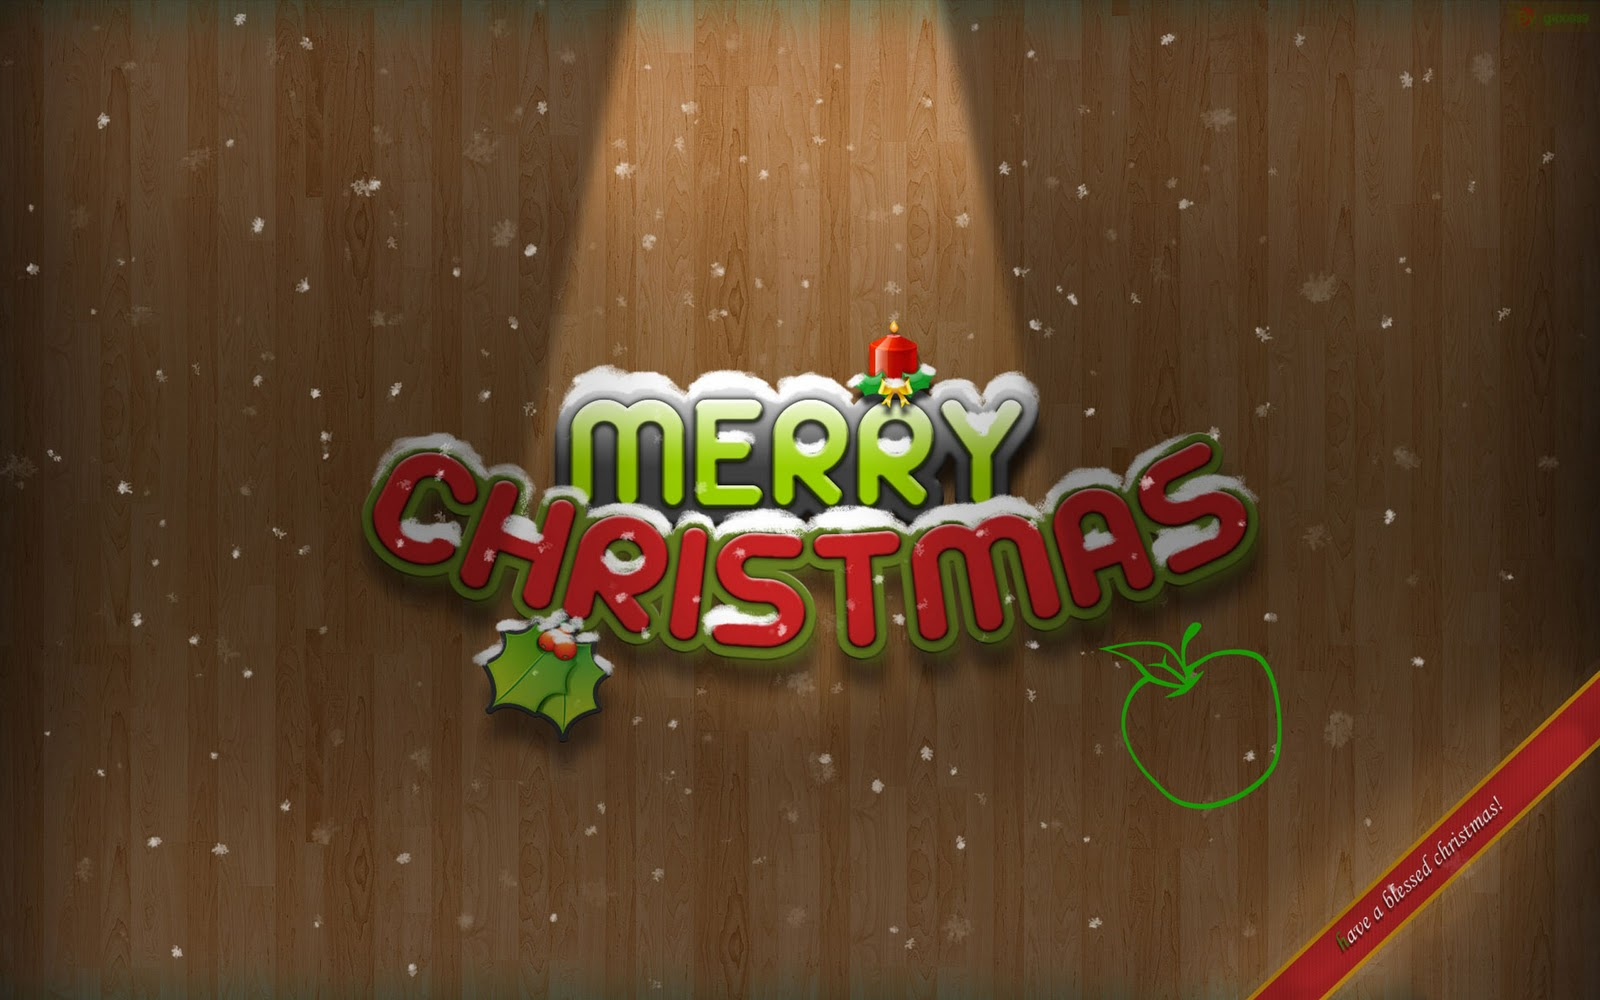 merry christmas desktop wallpaper free